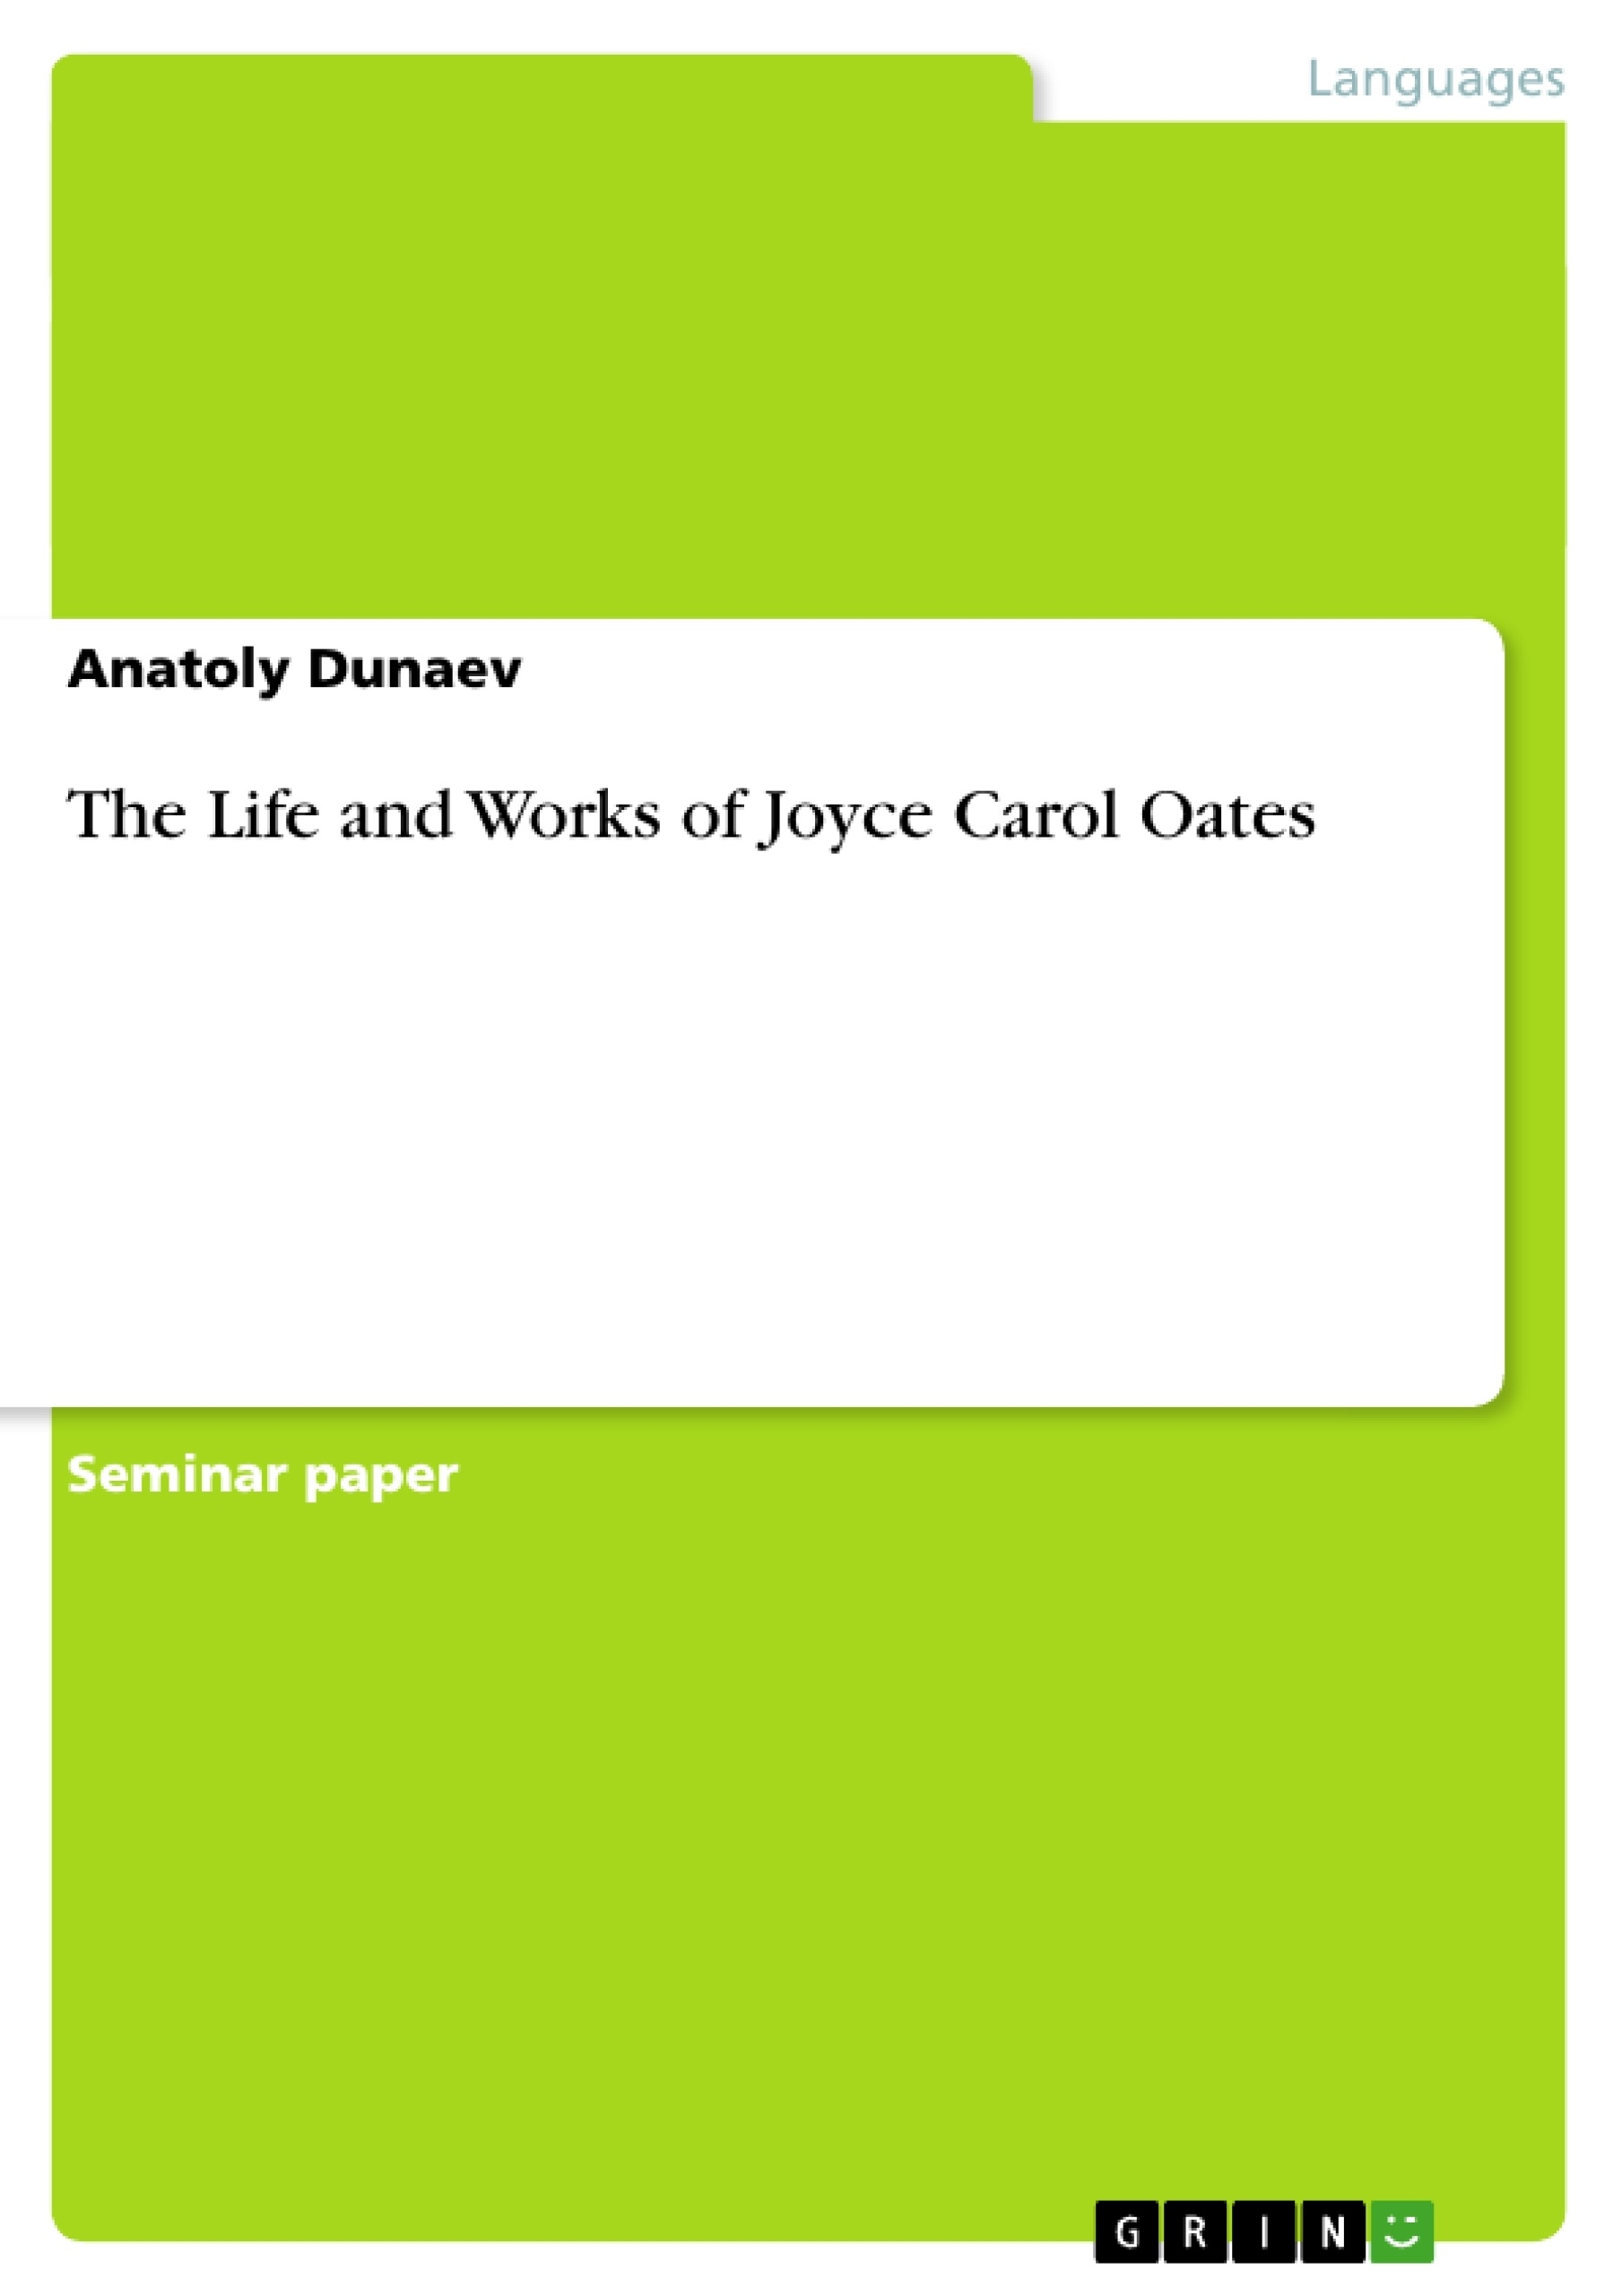 Title: The Life and Works of Joyce Carol Oates